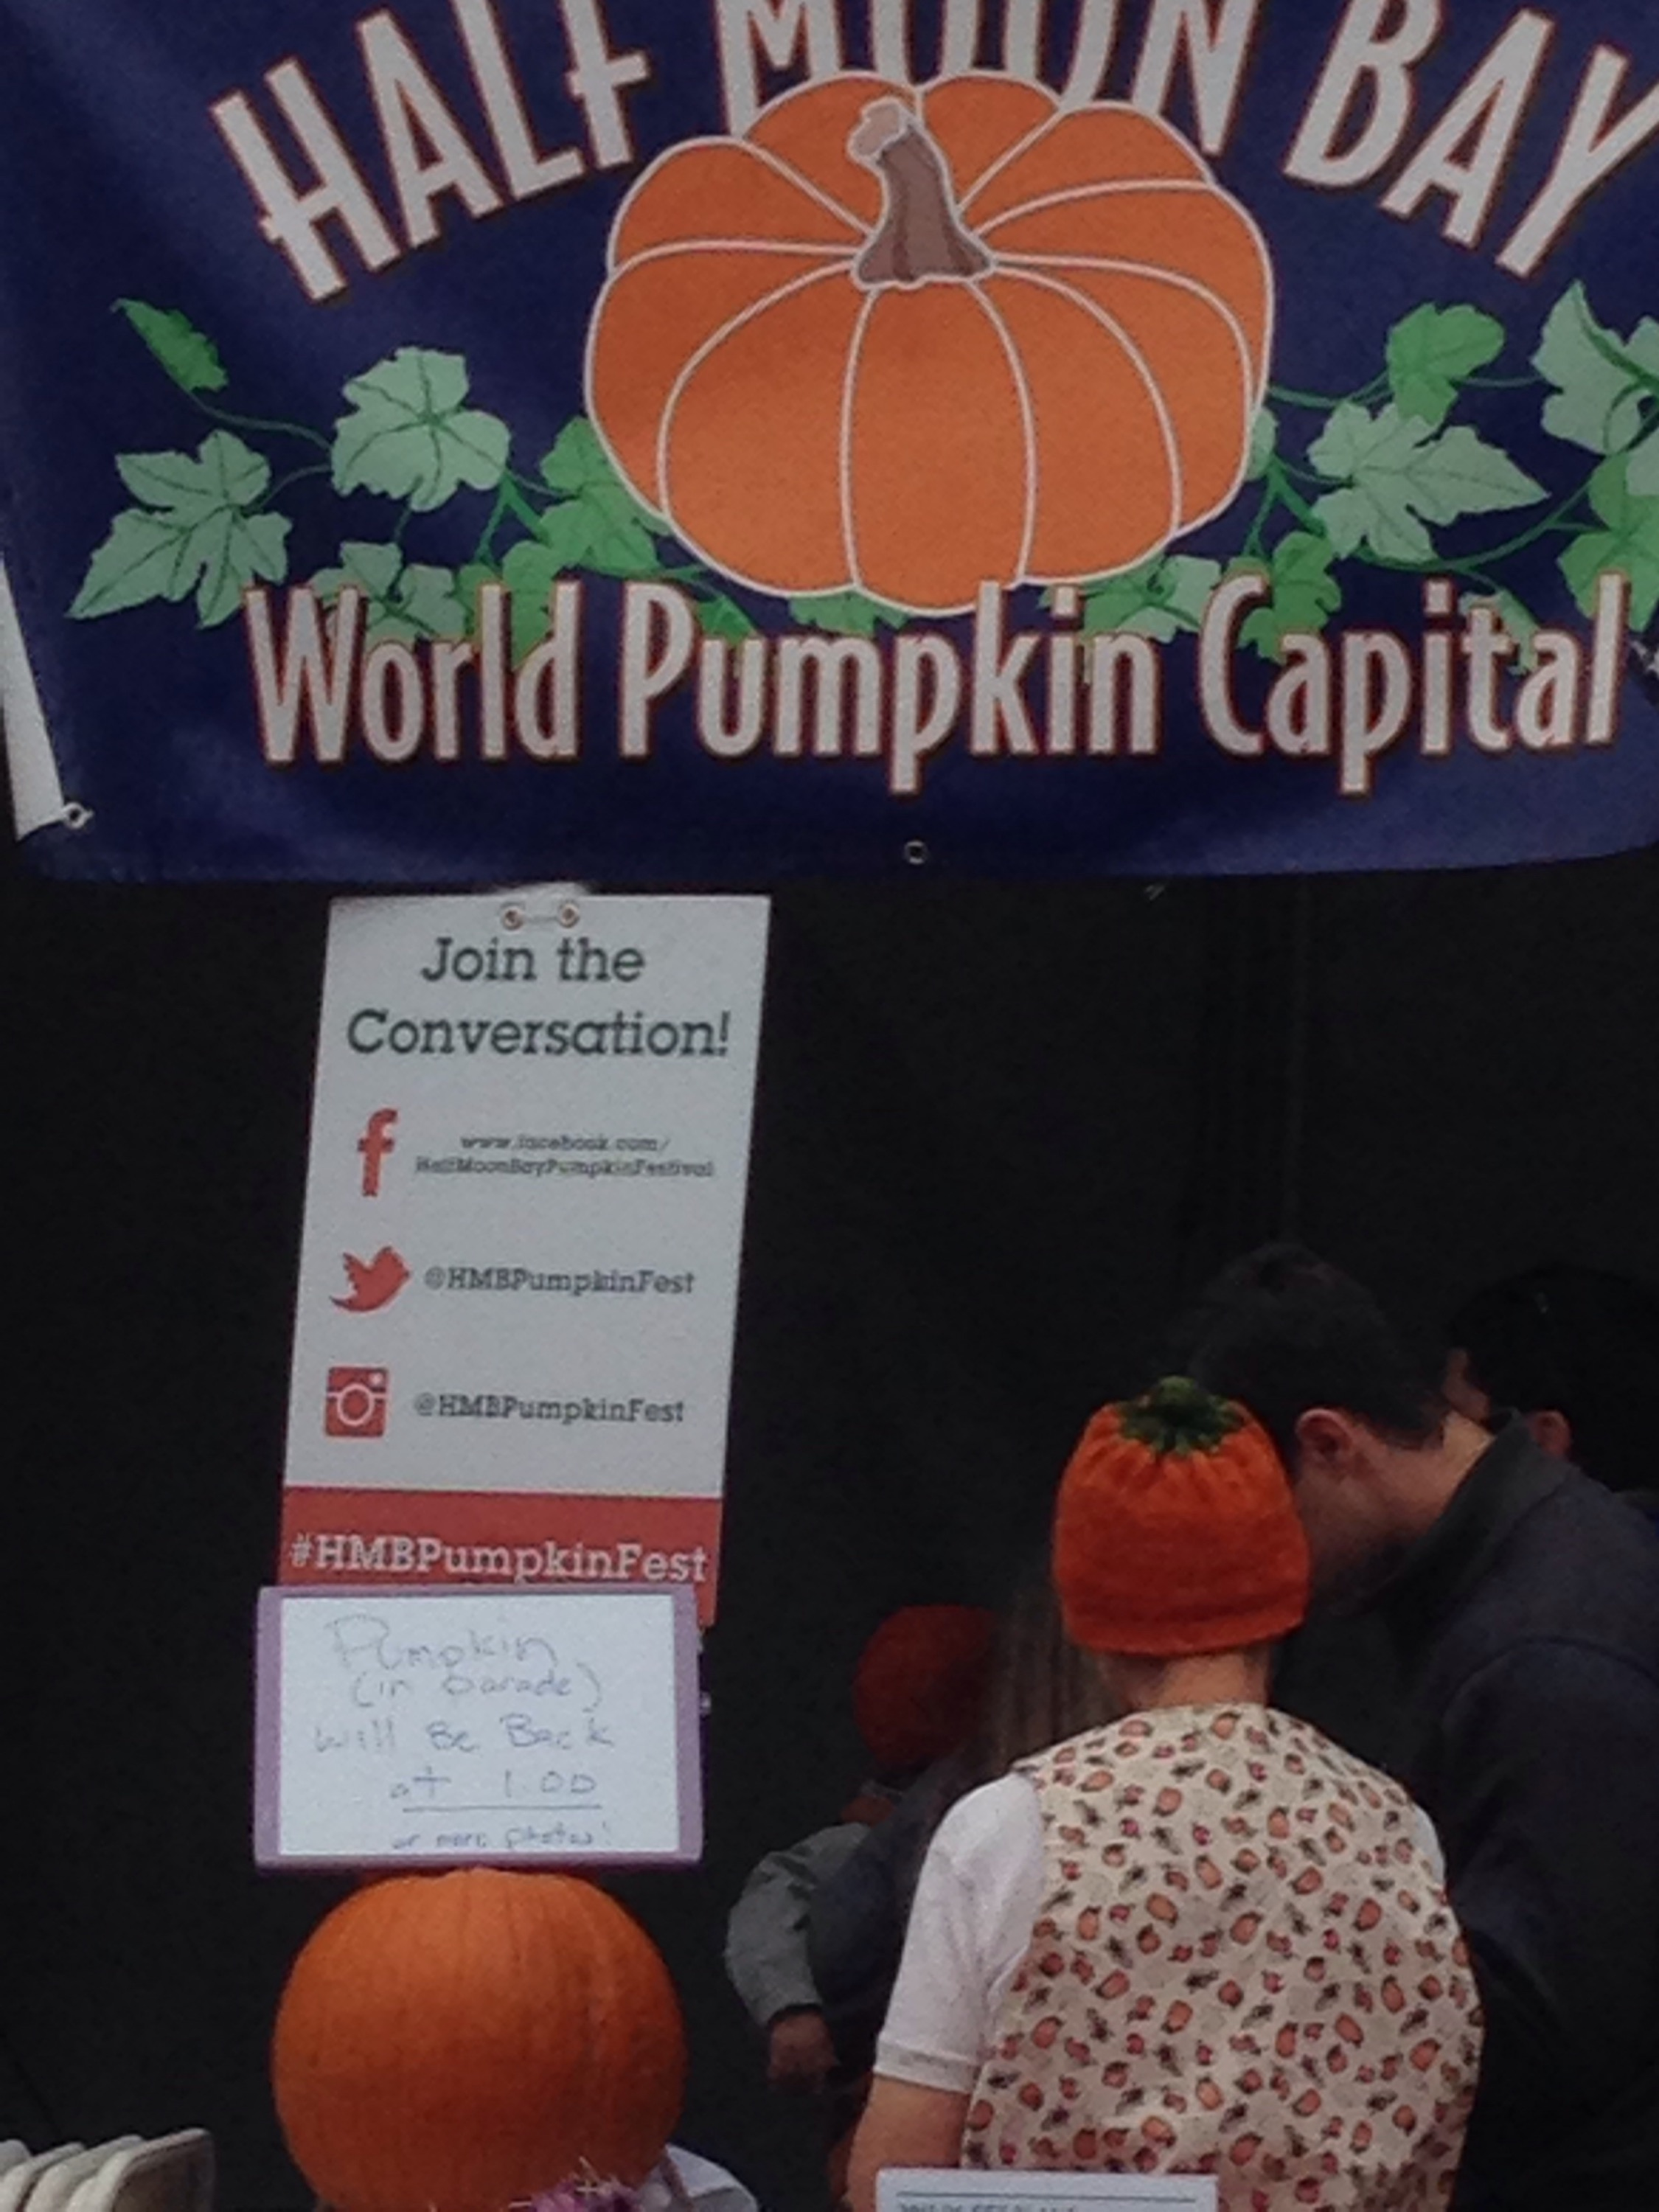 World Pumpkin Festival